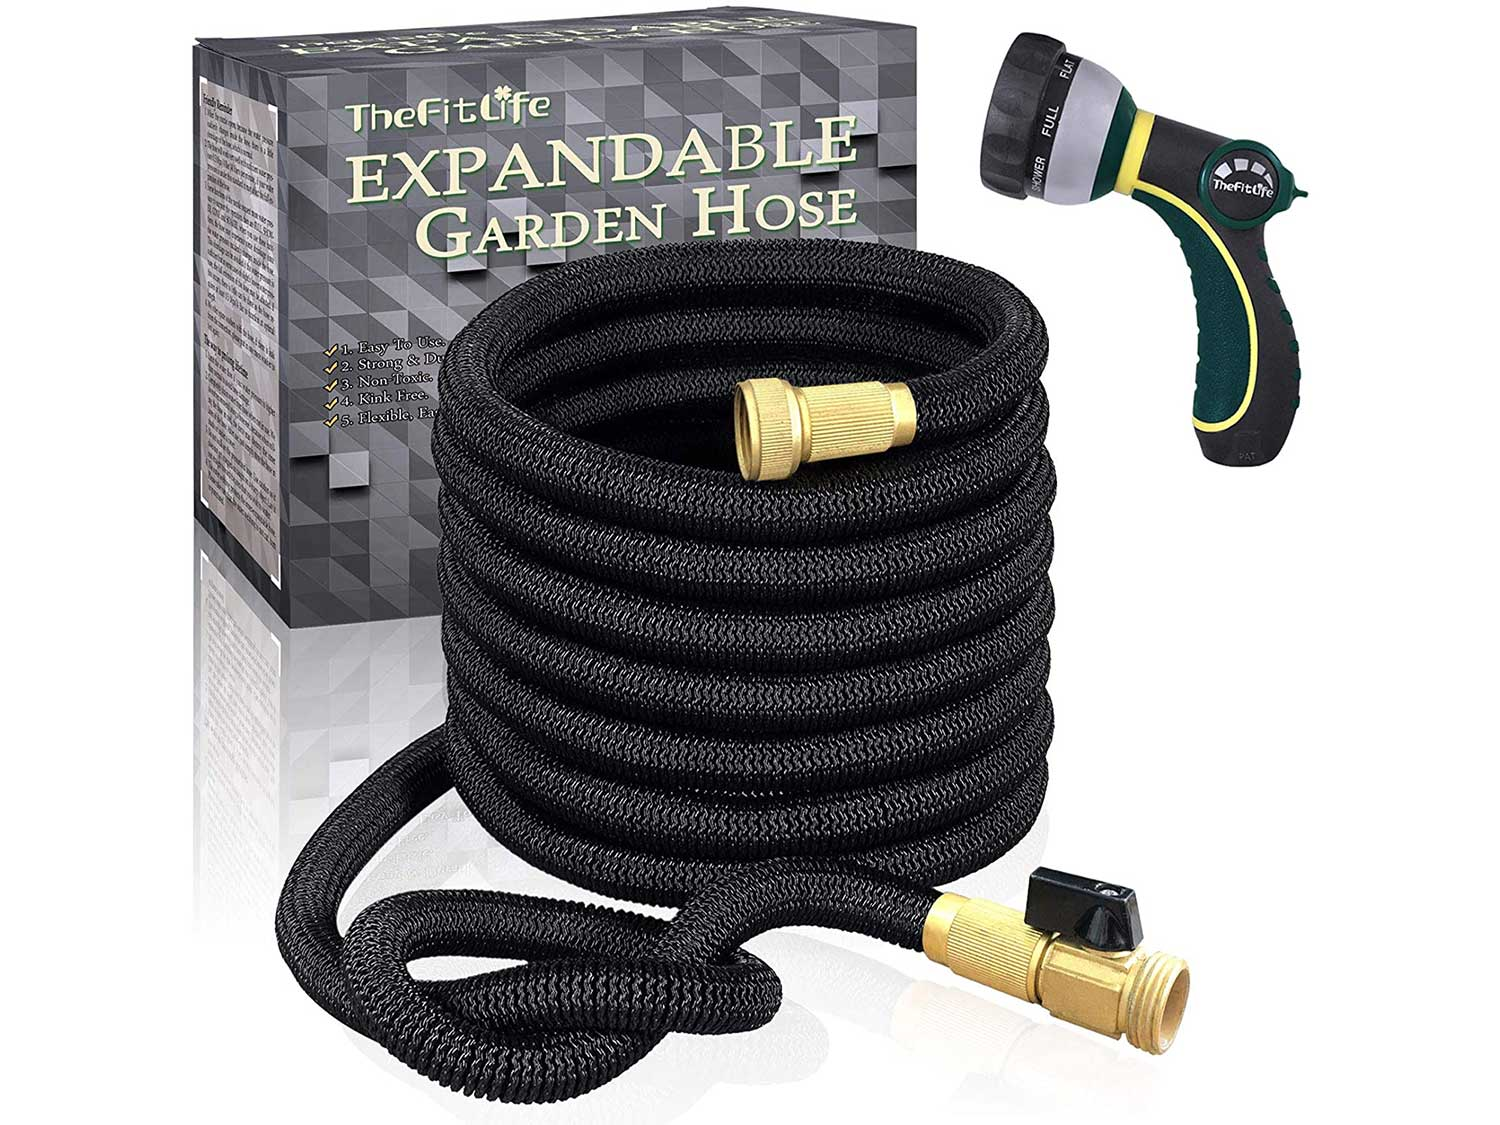 TheFitLife Flexible and Expandable Garden Hose - Strongest Triple Latex Core with 3/4